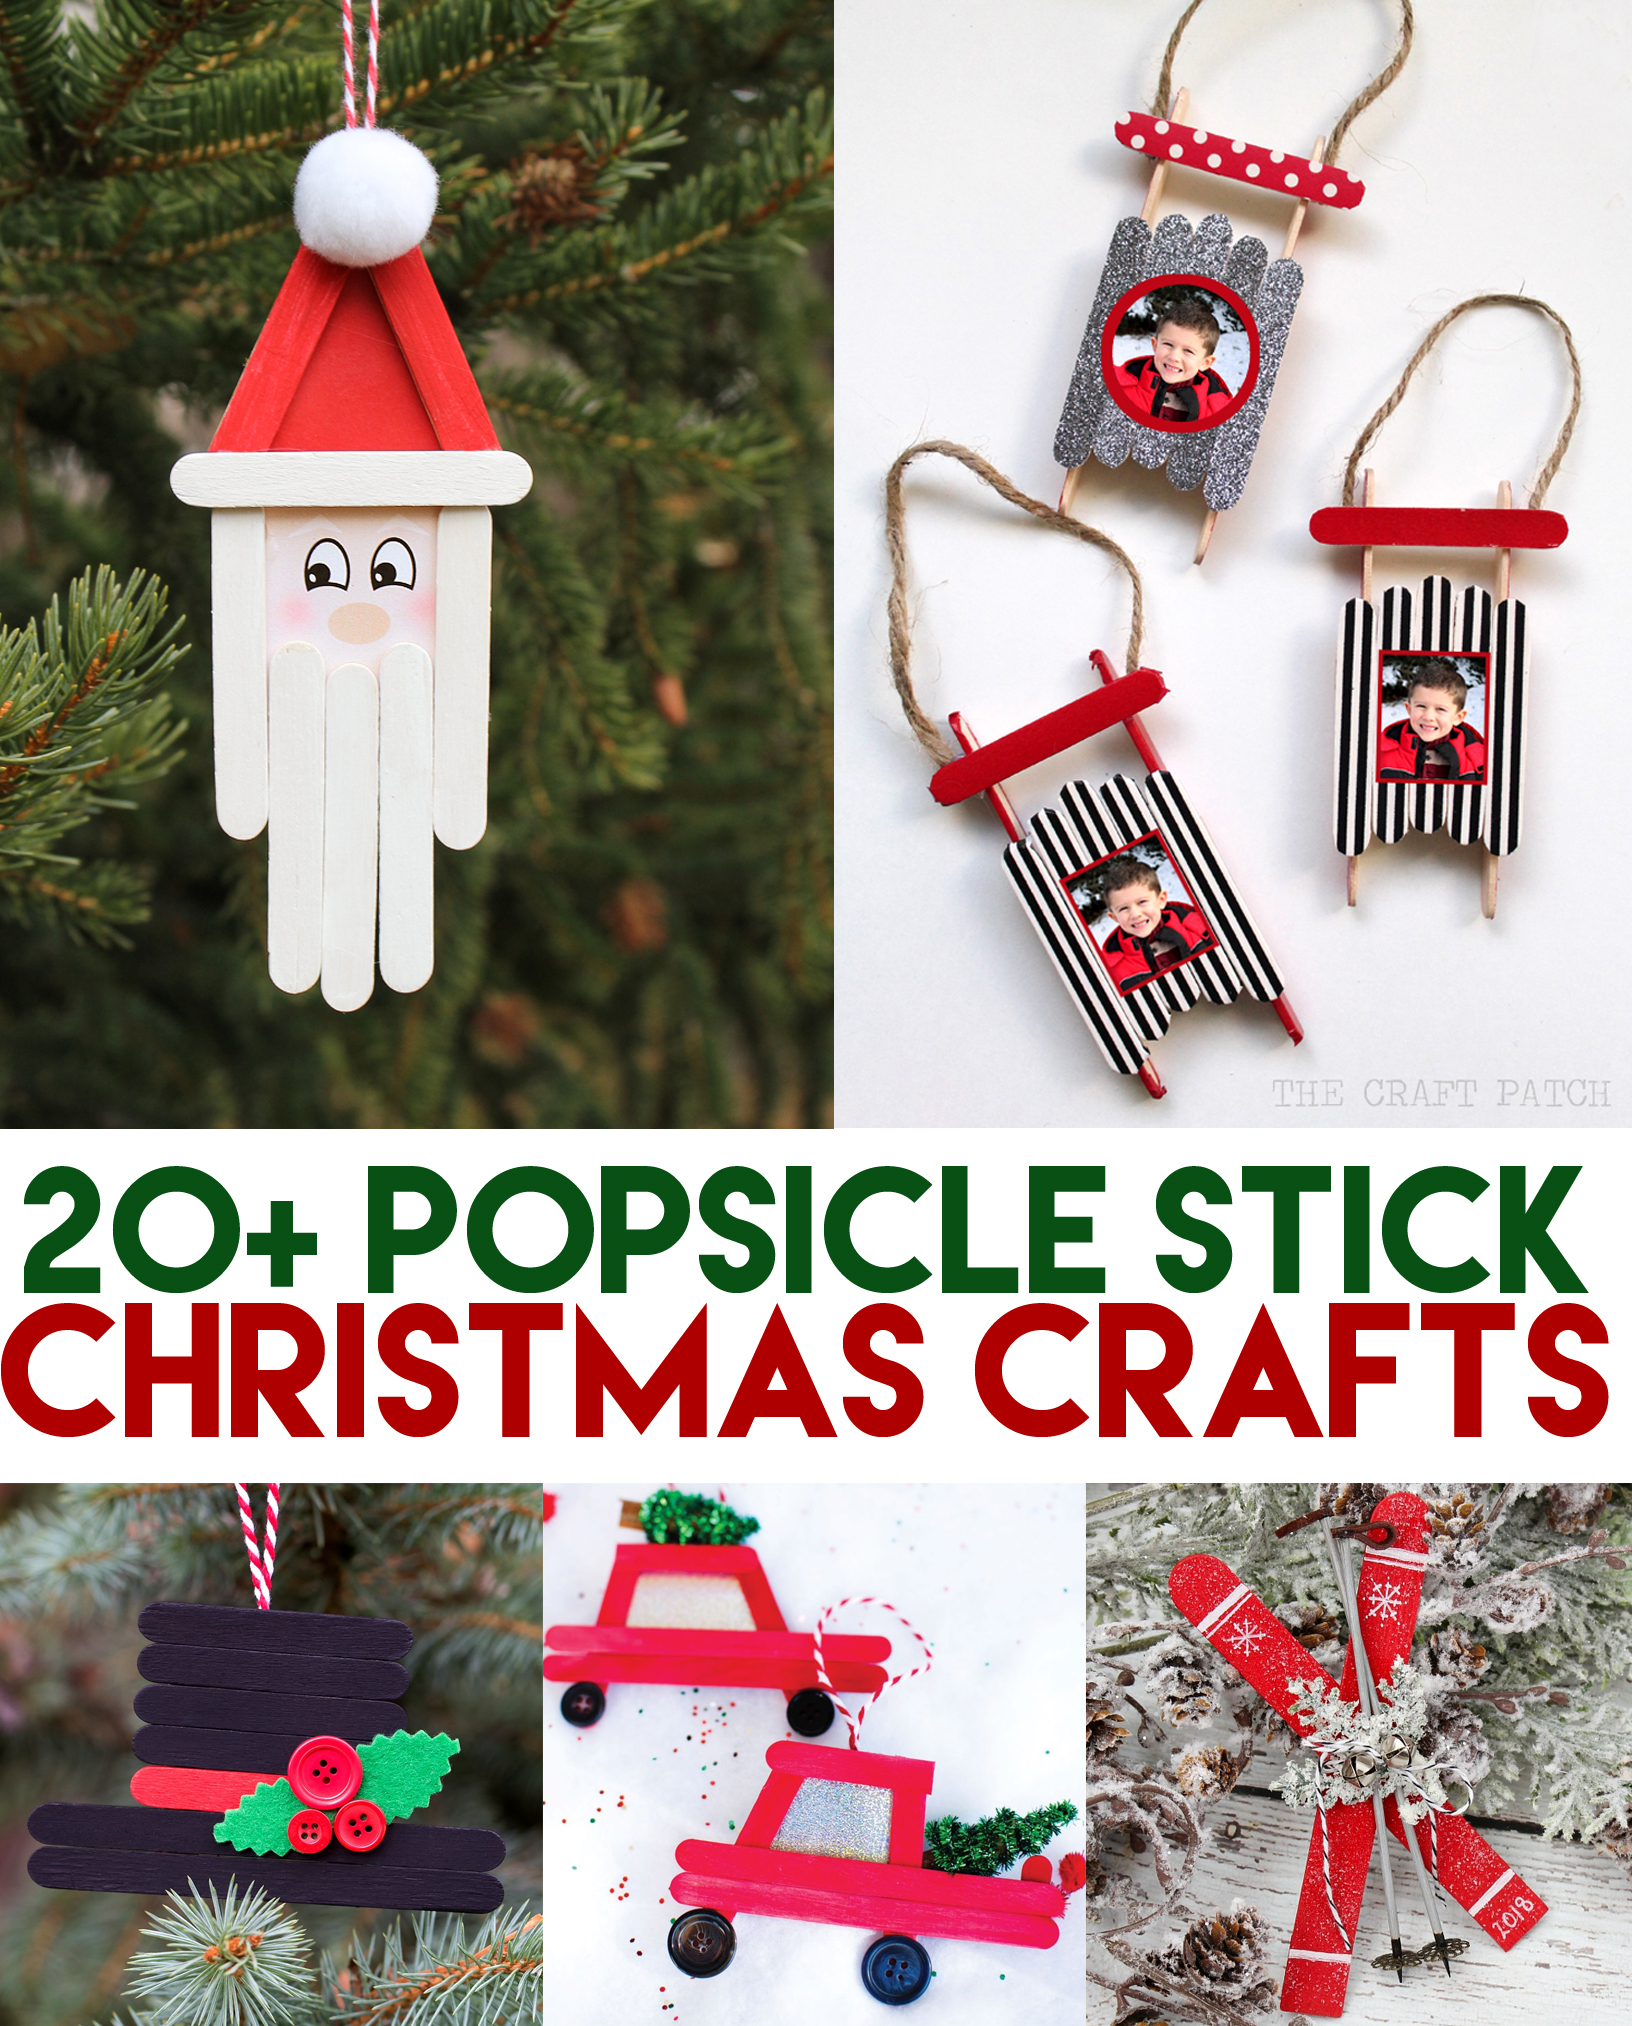 Popsicle Stick Christmas Tree Ornaments.Popsicle Stick Christmas Crafts Thecraftpatchblog Com